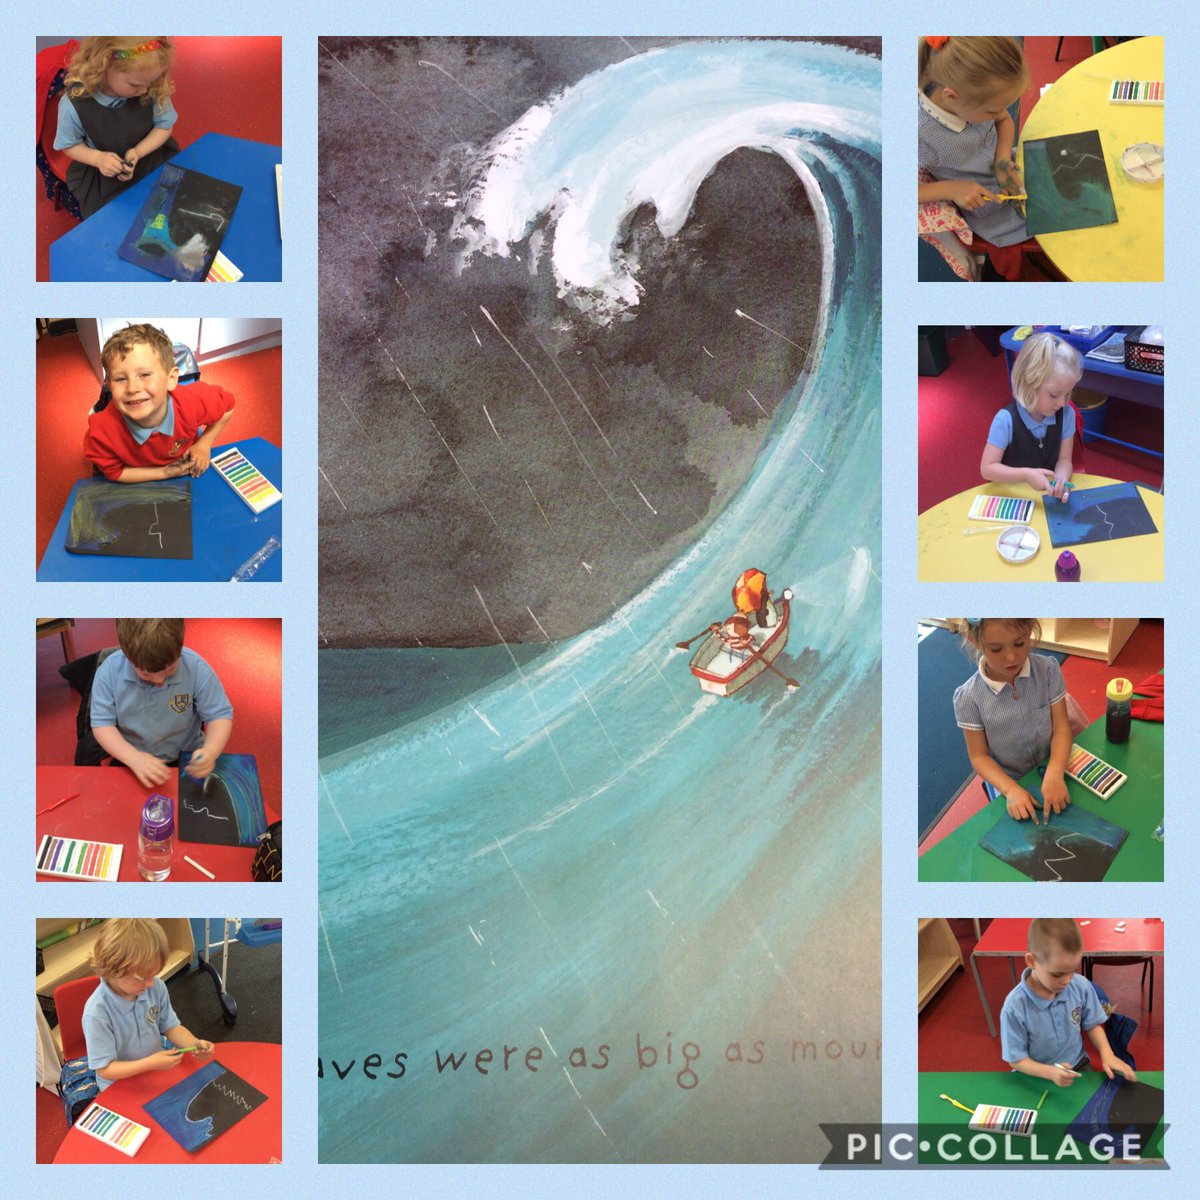 Another busy afternoon in our bubble. We have made our own wave pictures using pastels and paint. Aren't they fabulous! #LostandFound #Art #Learningpic.twitter.com/3CN12Gwk2J